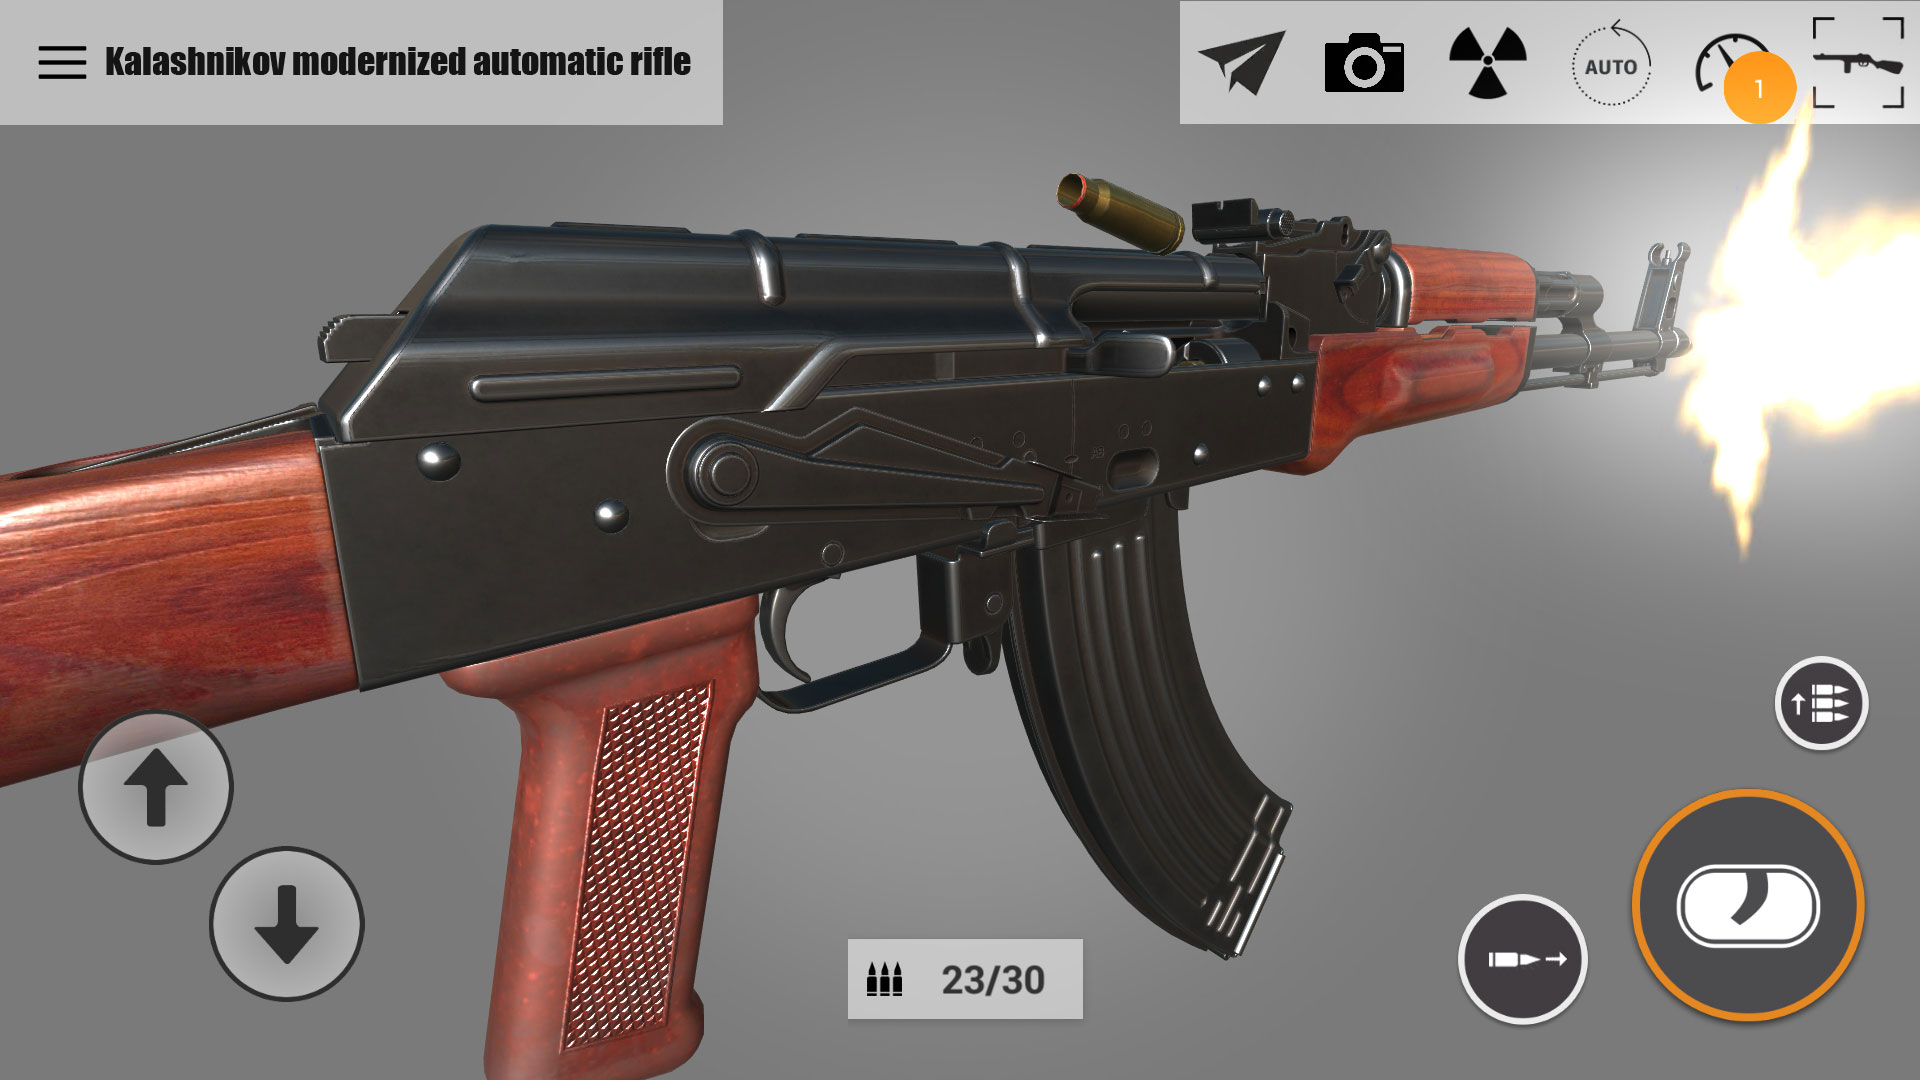 AKM is coming to Weapons of Heroes guns game